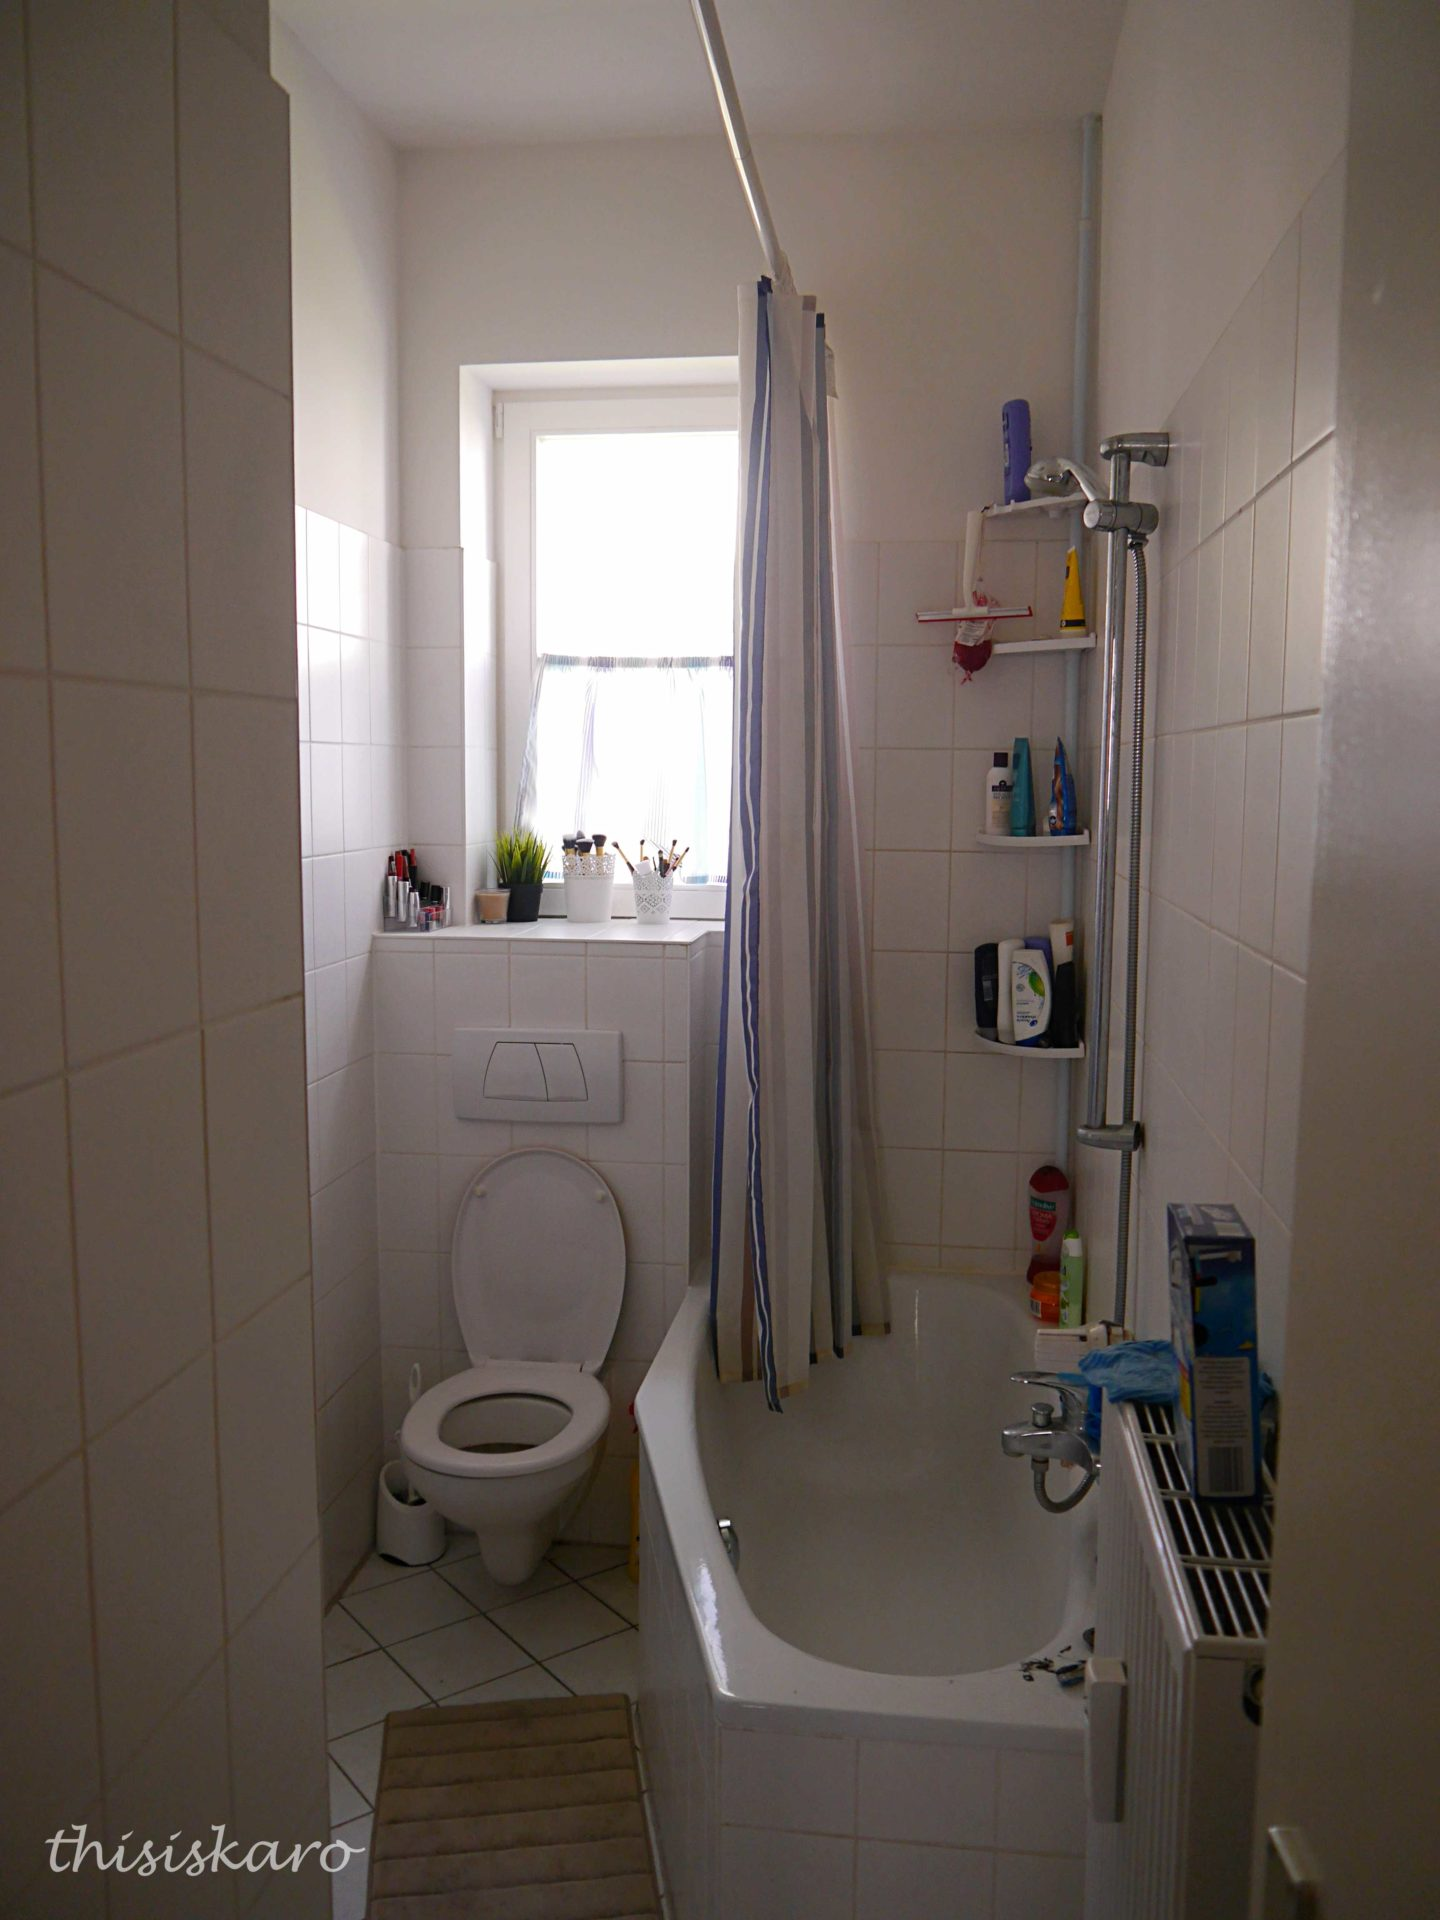 How to re-decorate a bathroom with just a small budget